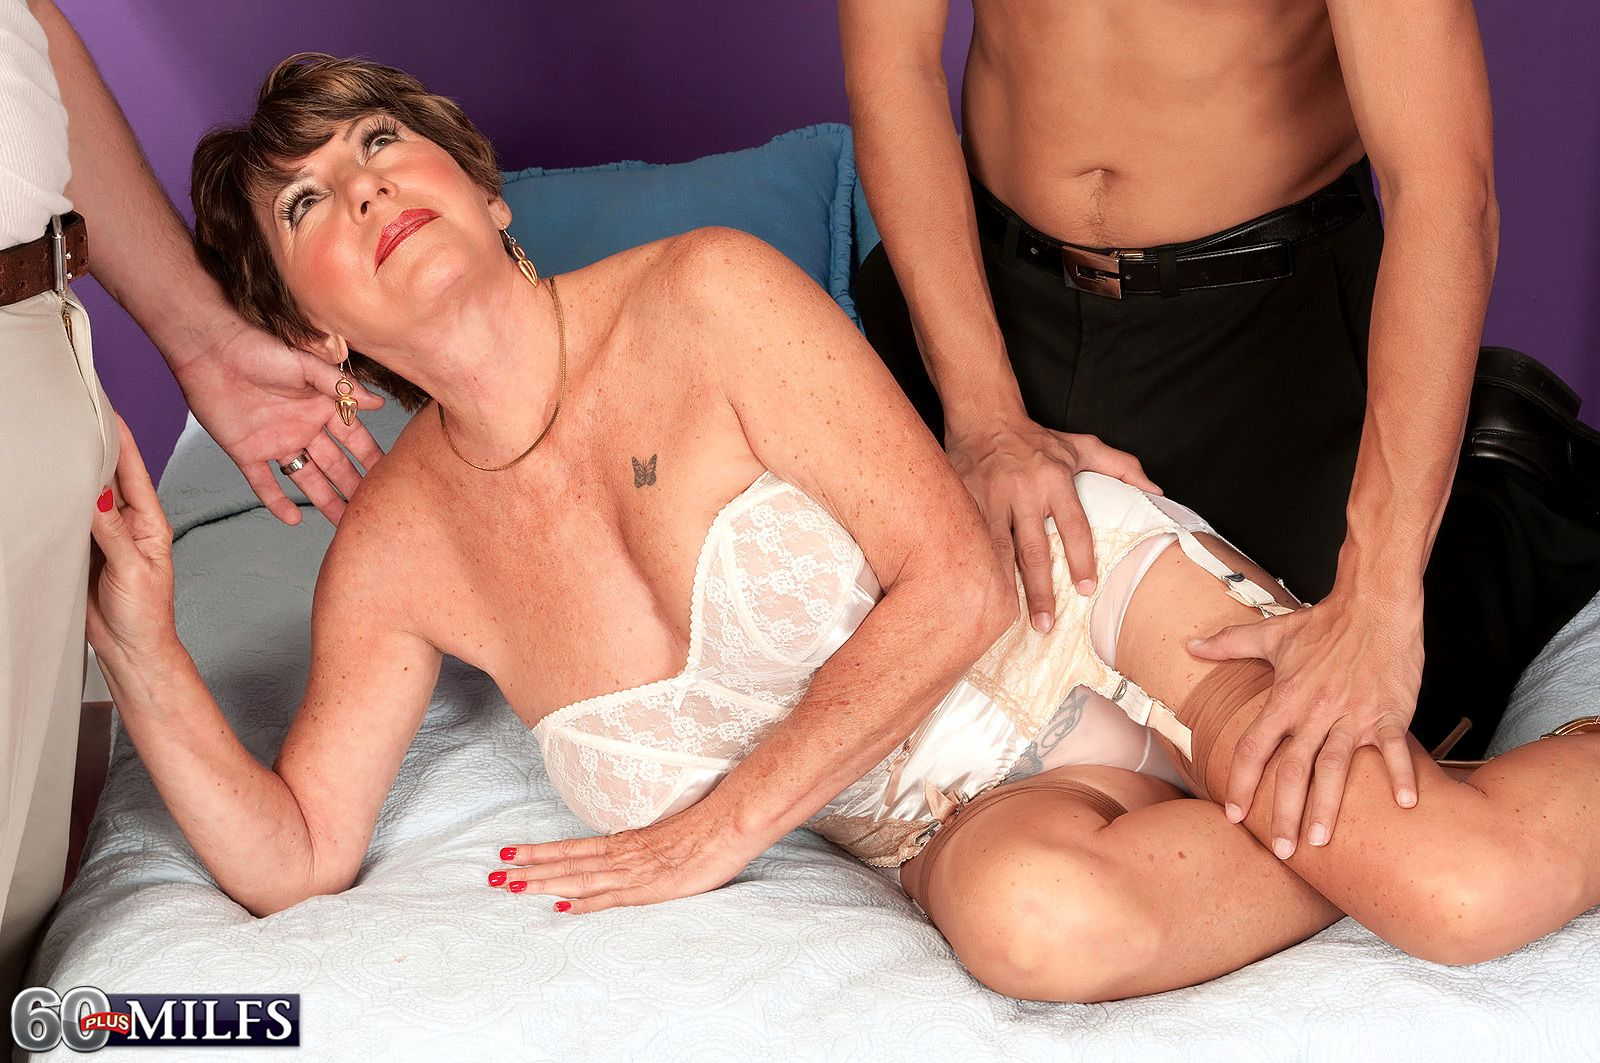 image Homemade threesome mmf 72